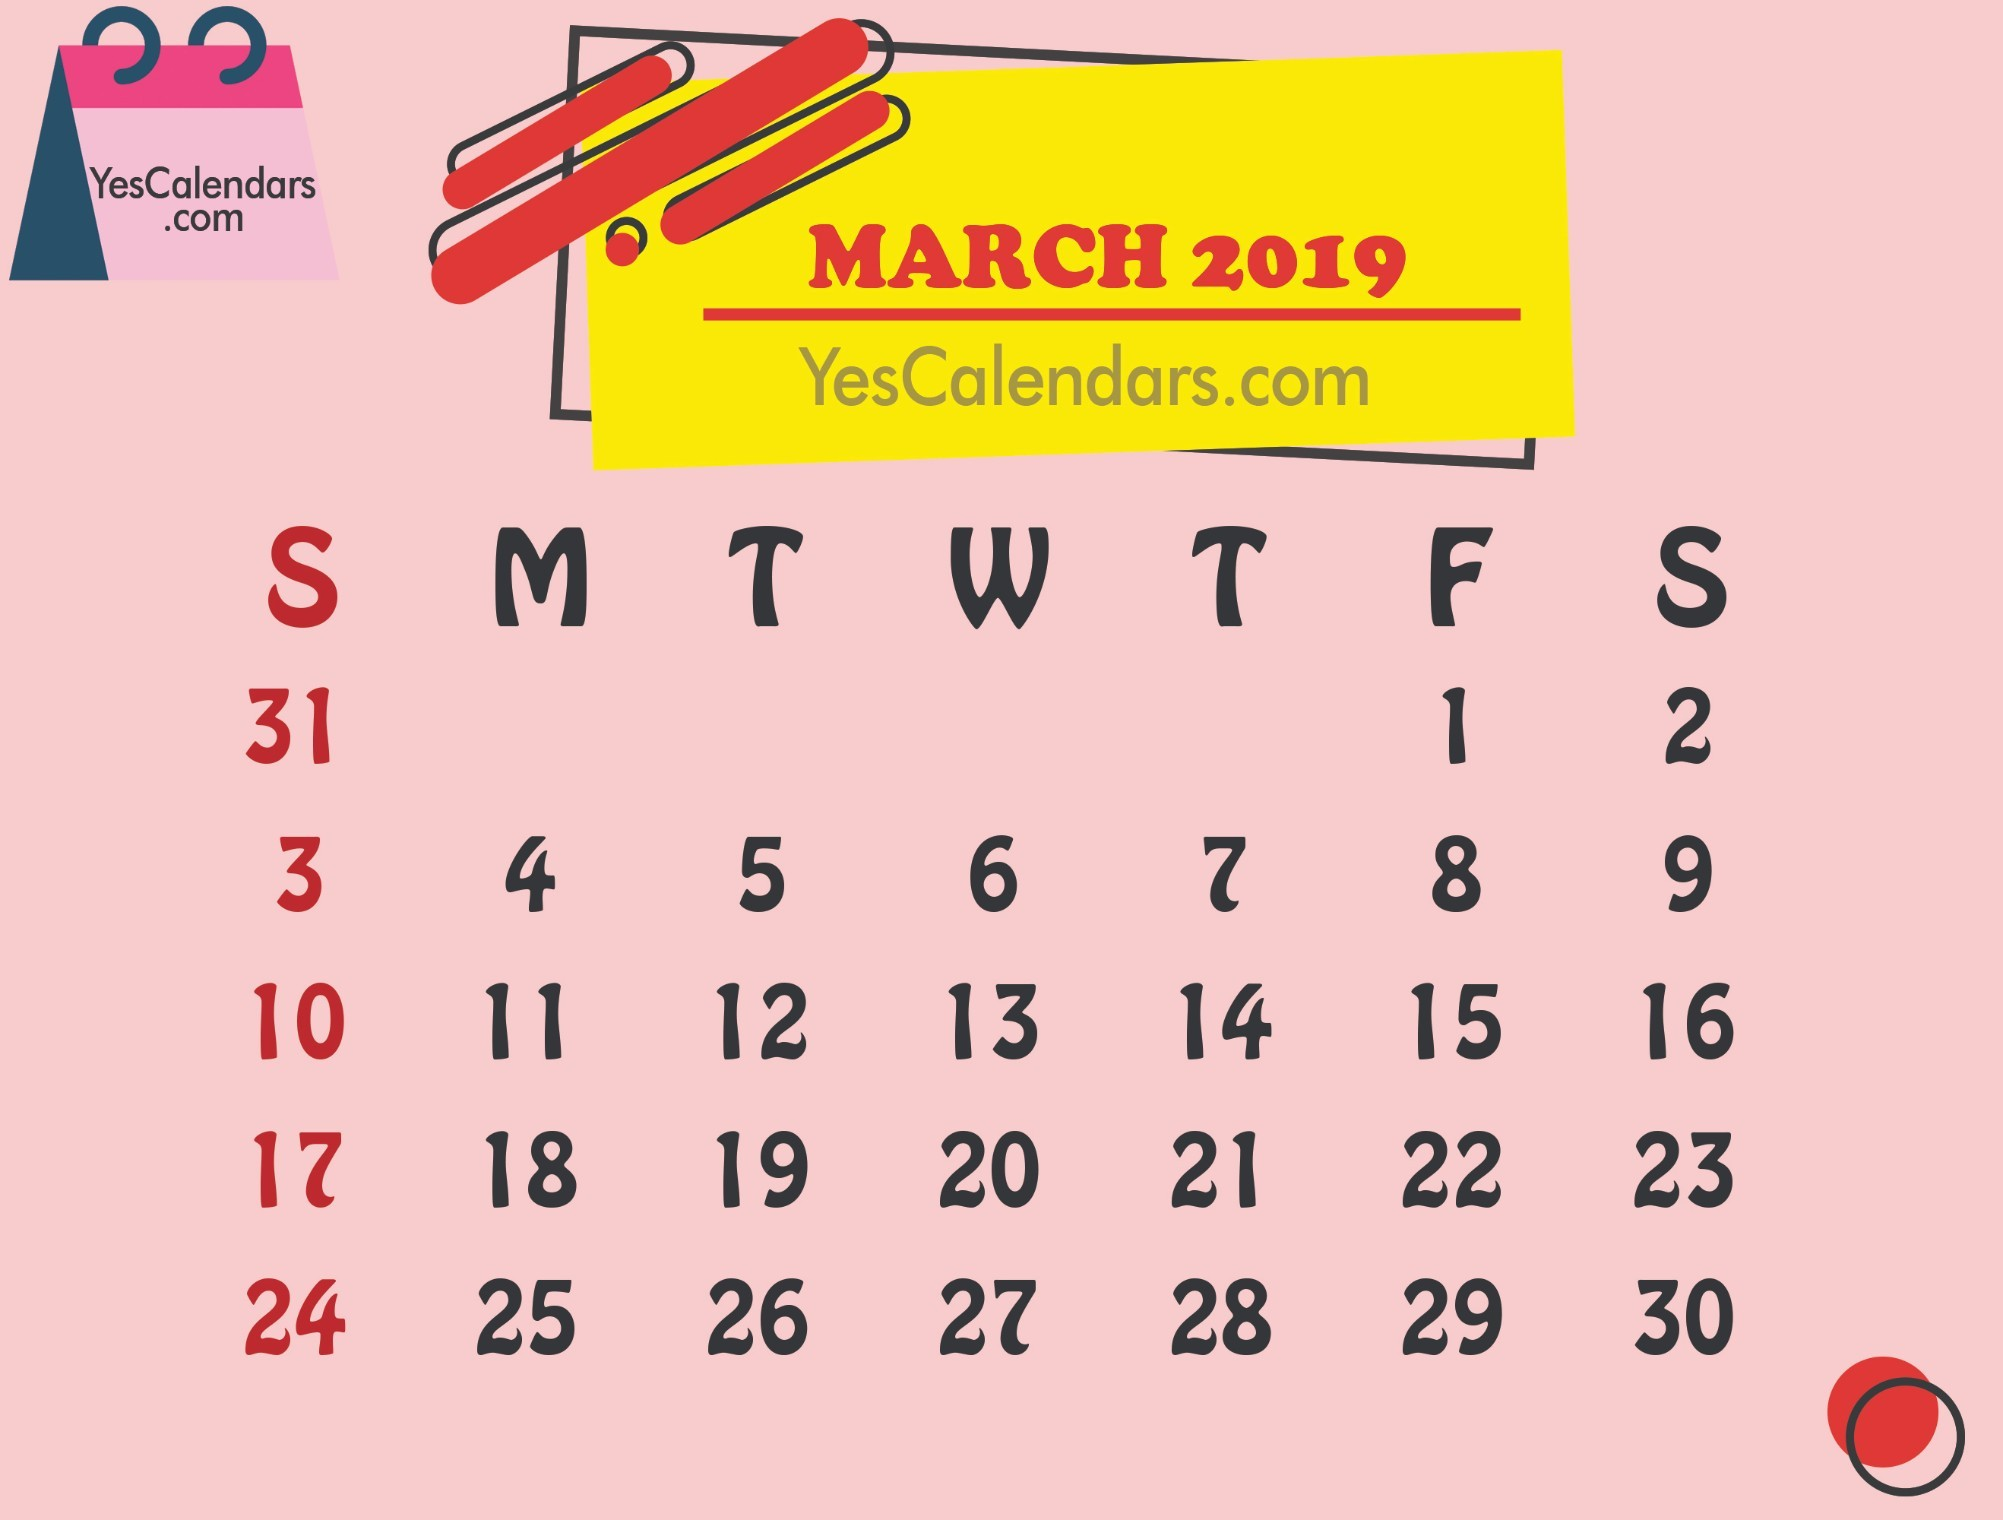 March Holiday Calendar 2019 Más Populares Printable March 2019 Calendar Template Holidays Yes Calendars Of March Holiday Calendar 2019 Mejores Y Más Novedosos March 2019 Calendar Printable with Holidays